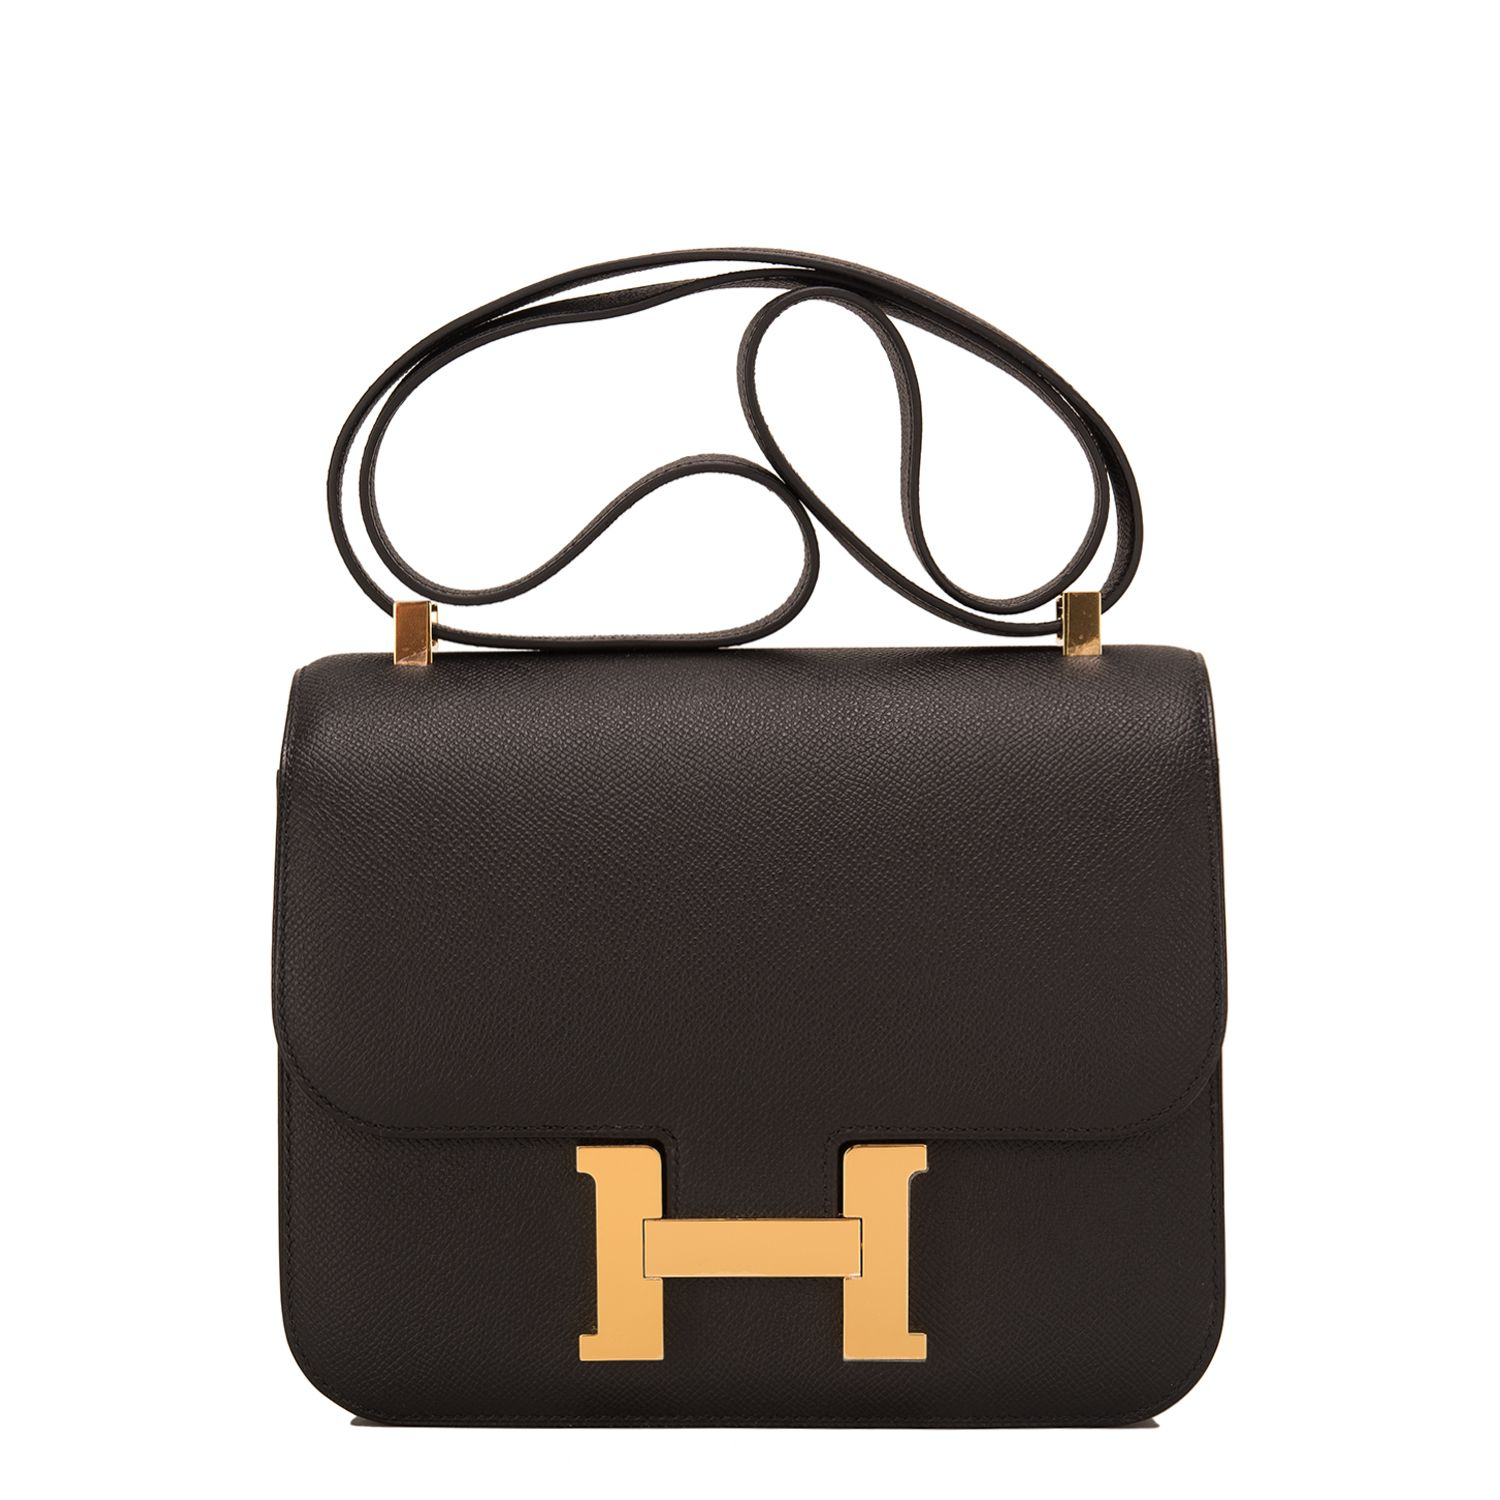 8f4397d94001 Hermes Constance  Bag Black Epsom Gold Hardware